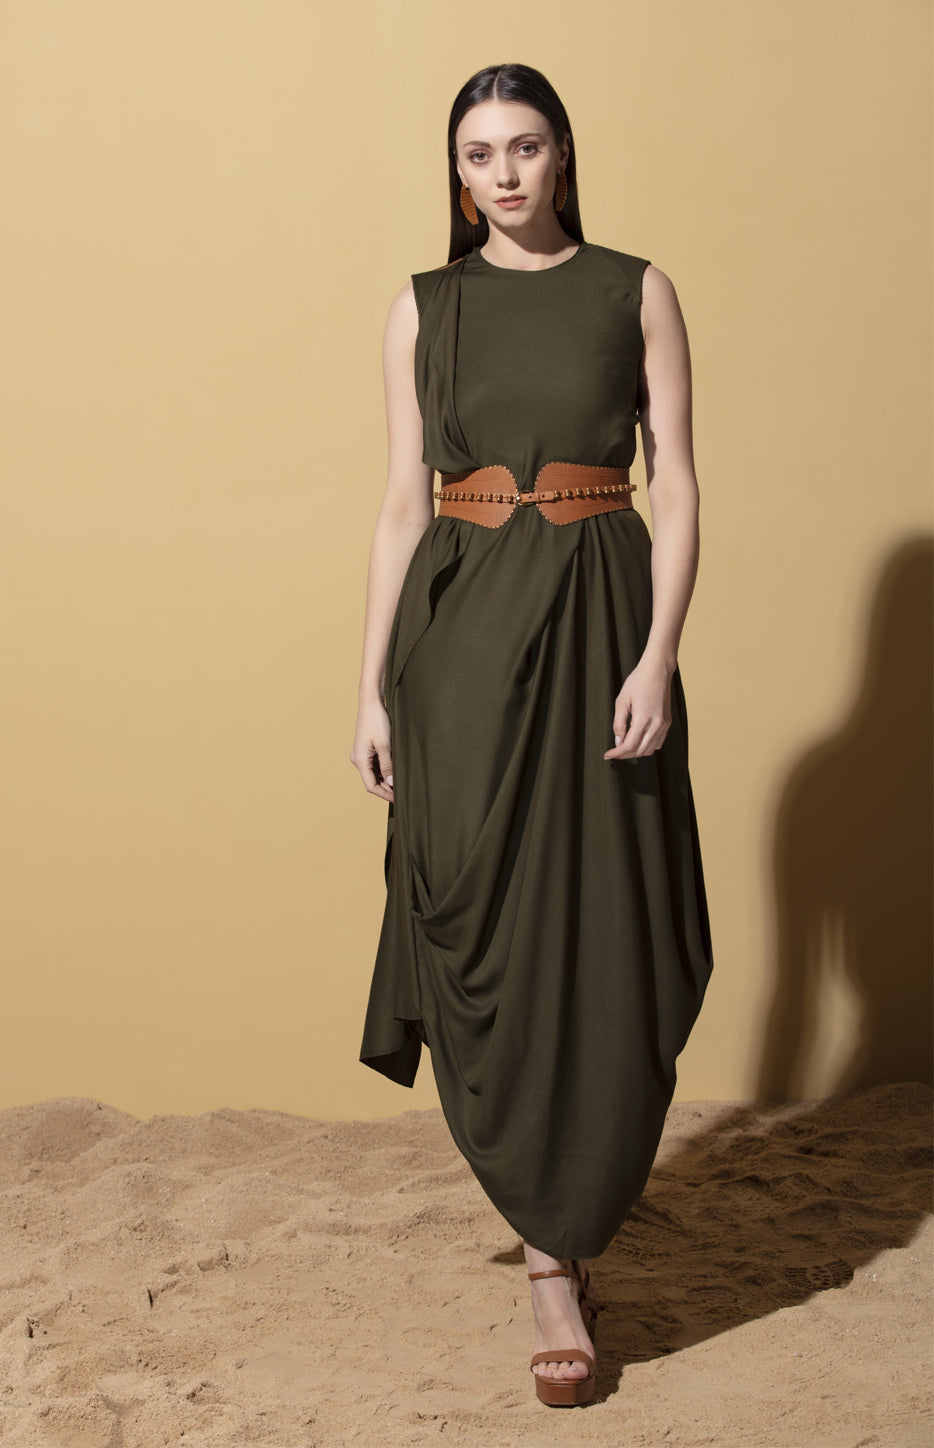 Nzuri Drapped Olive Green Dress in Twill